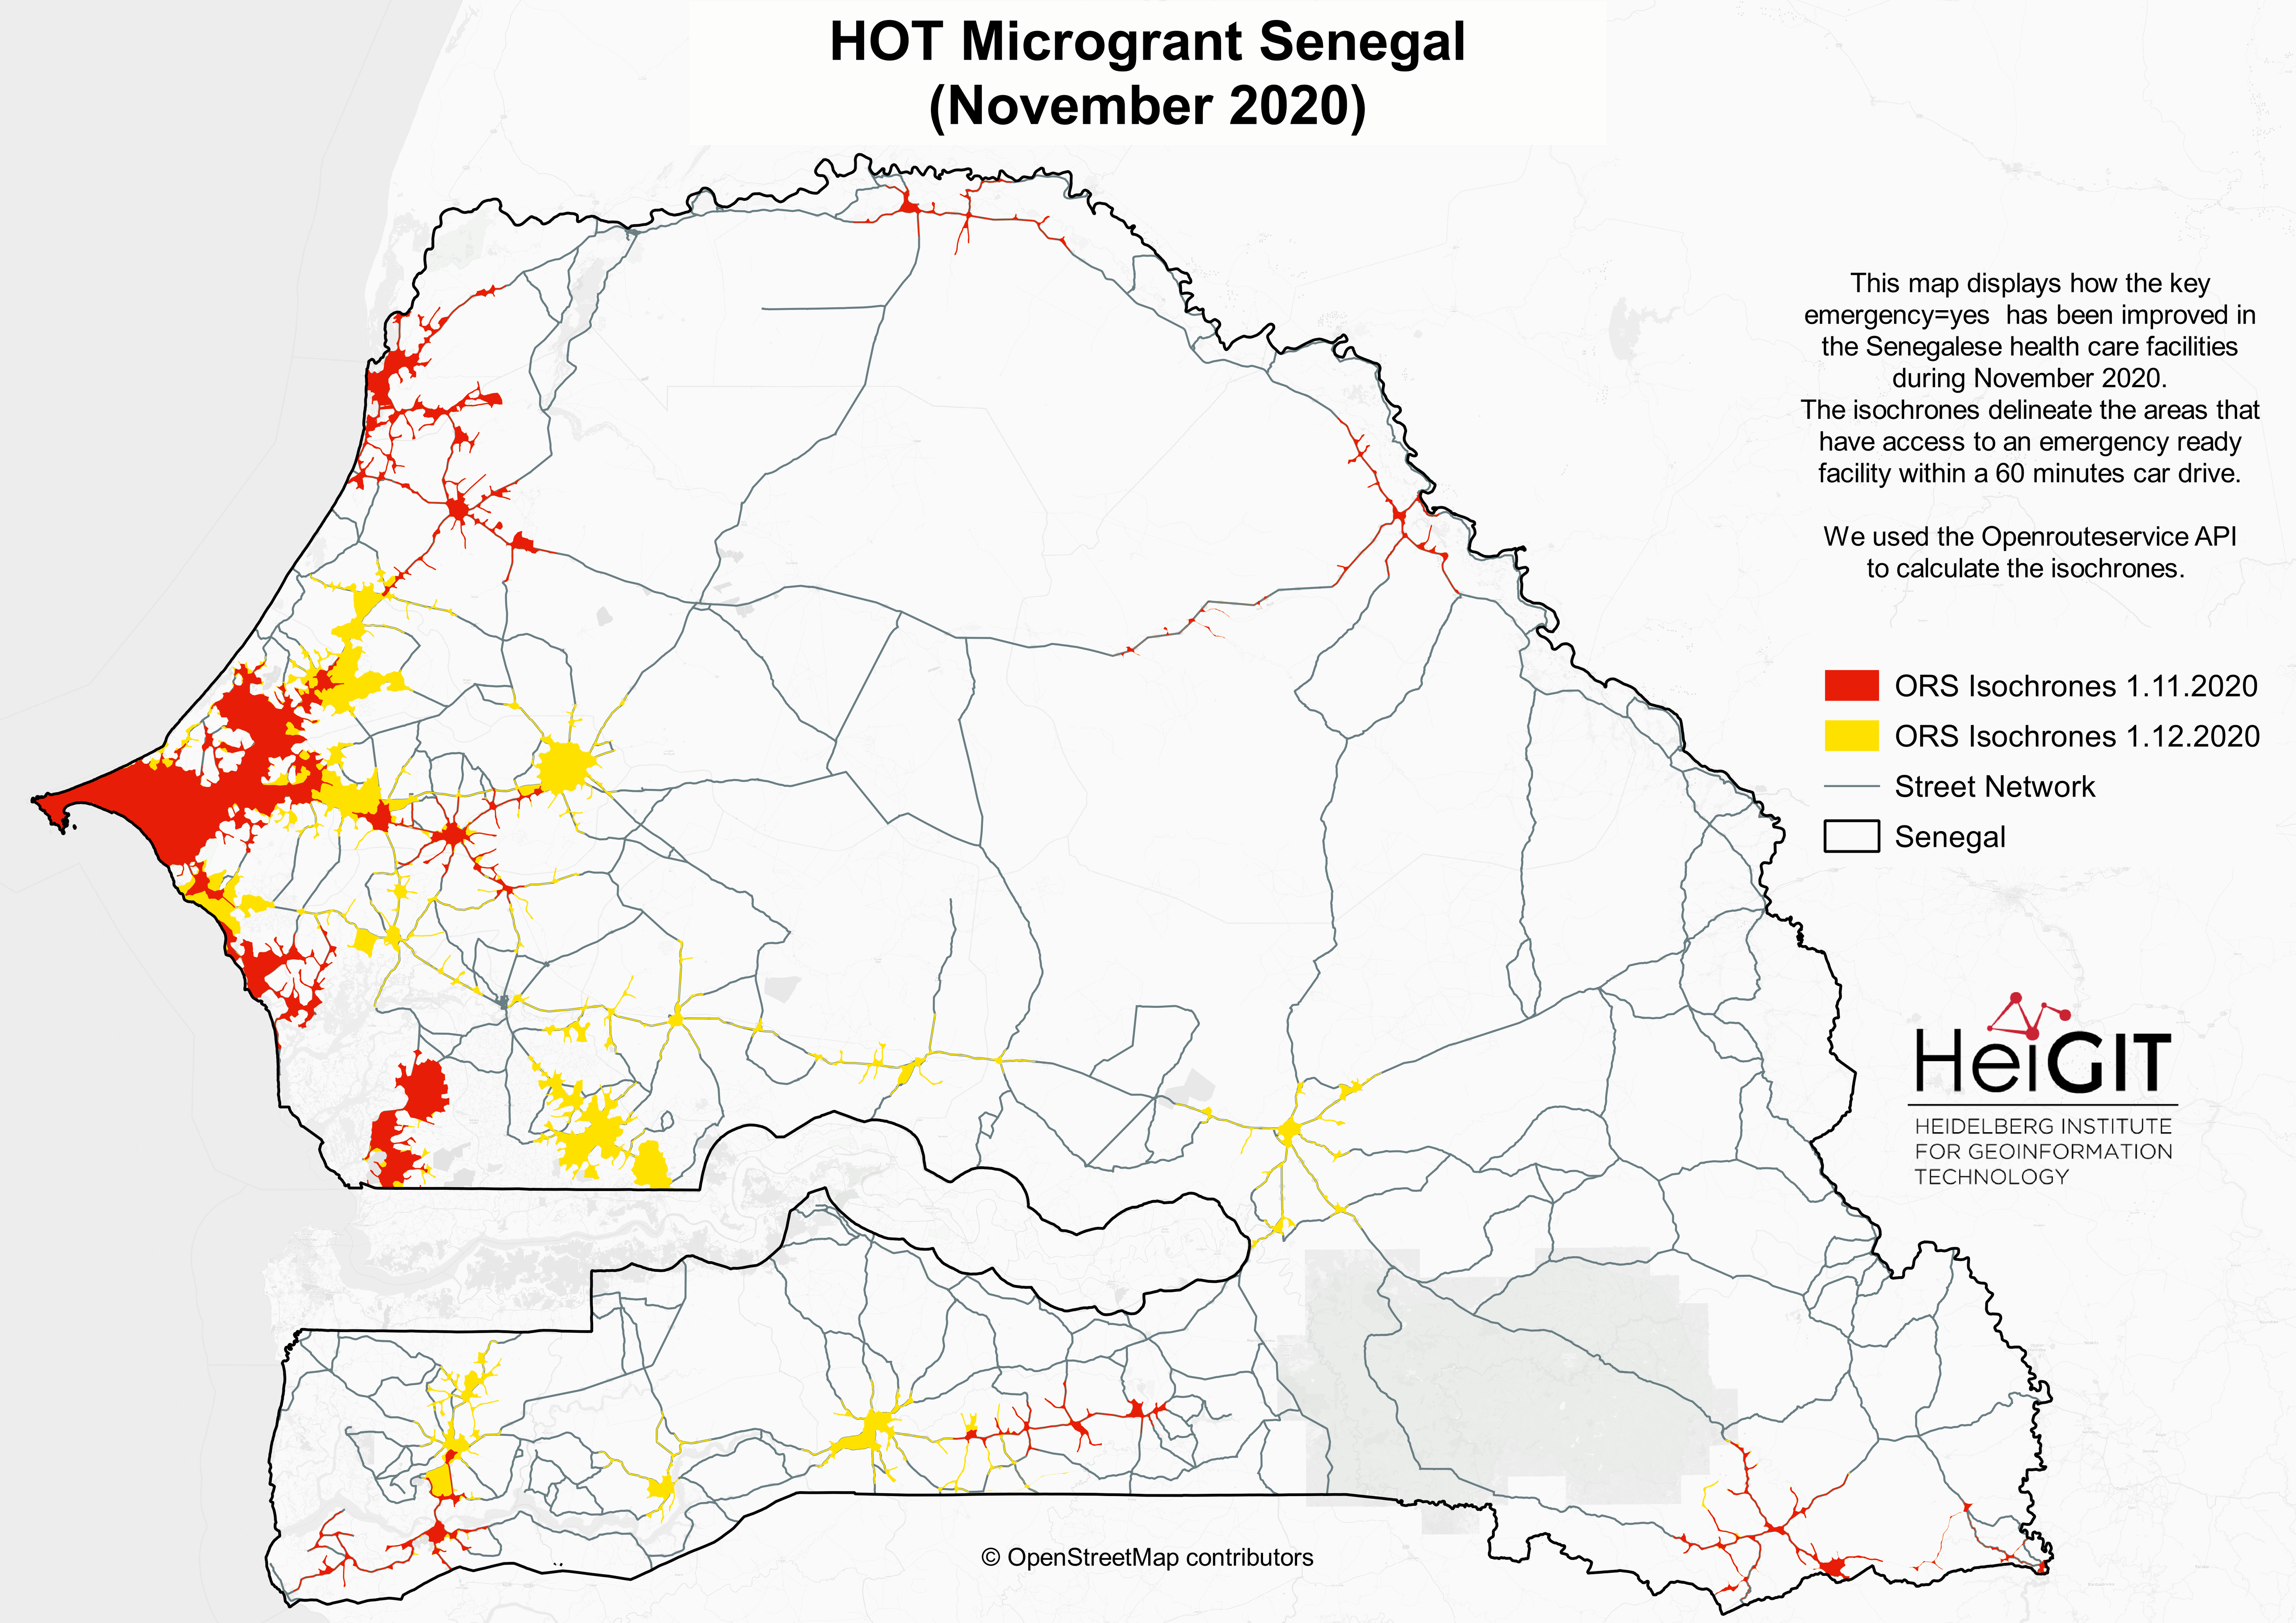 Accessibility map for health care facilities that bear an emergency tag in Senegal. Area covered by car access under 60 minutes are red for the state of November and yellow for the state of December 2020.